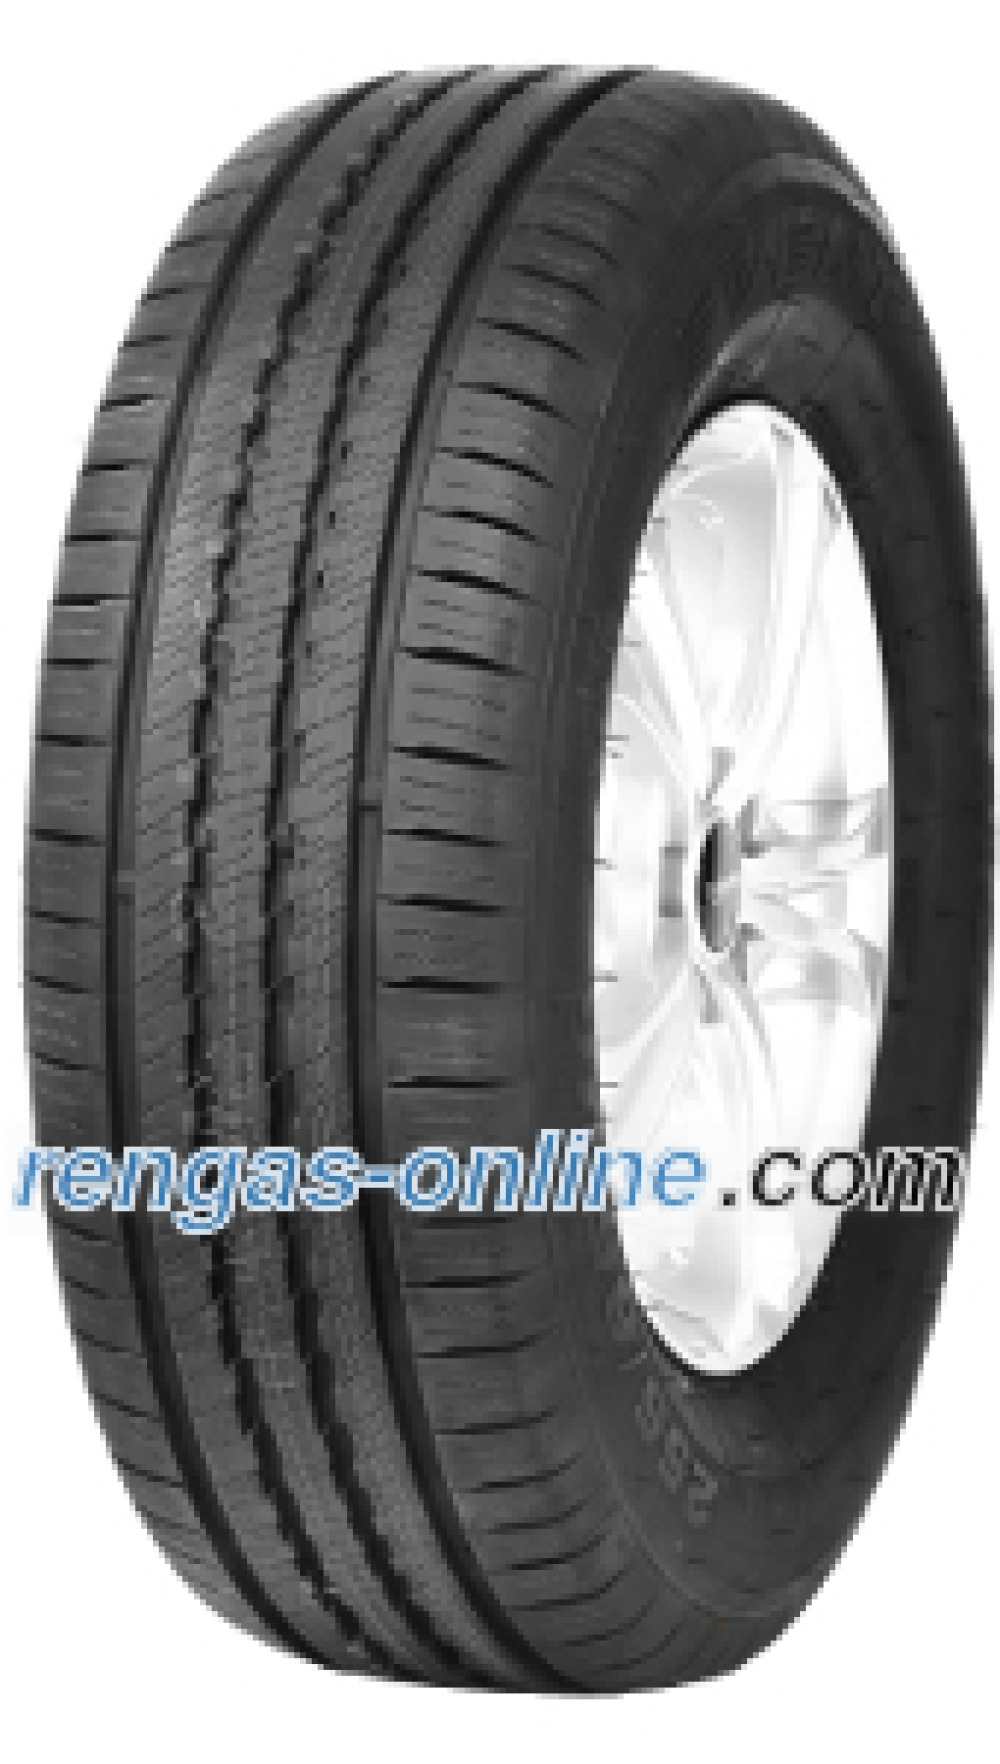 event-limus-4x4-33x1250-r15-108s